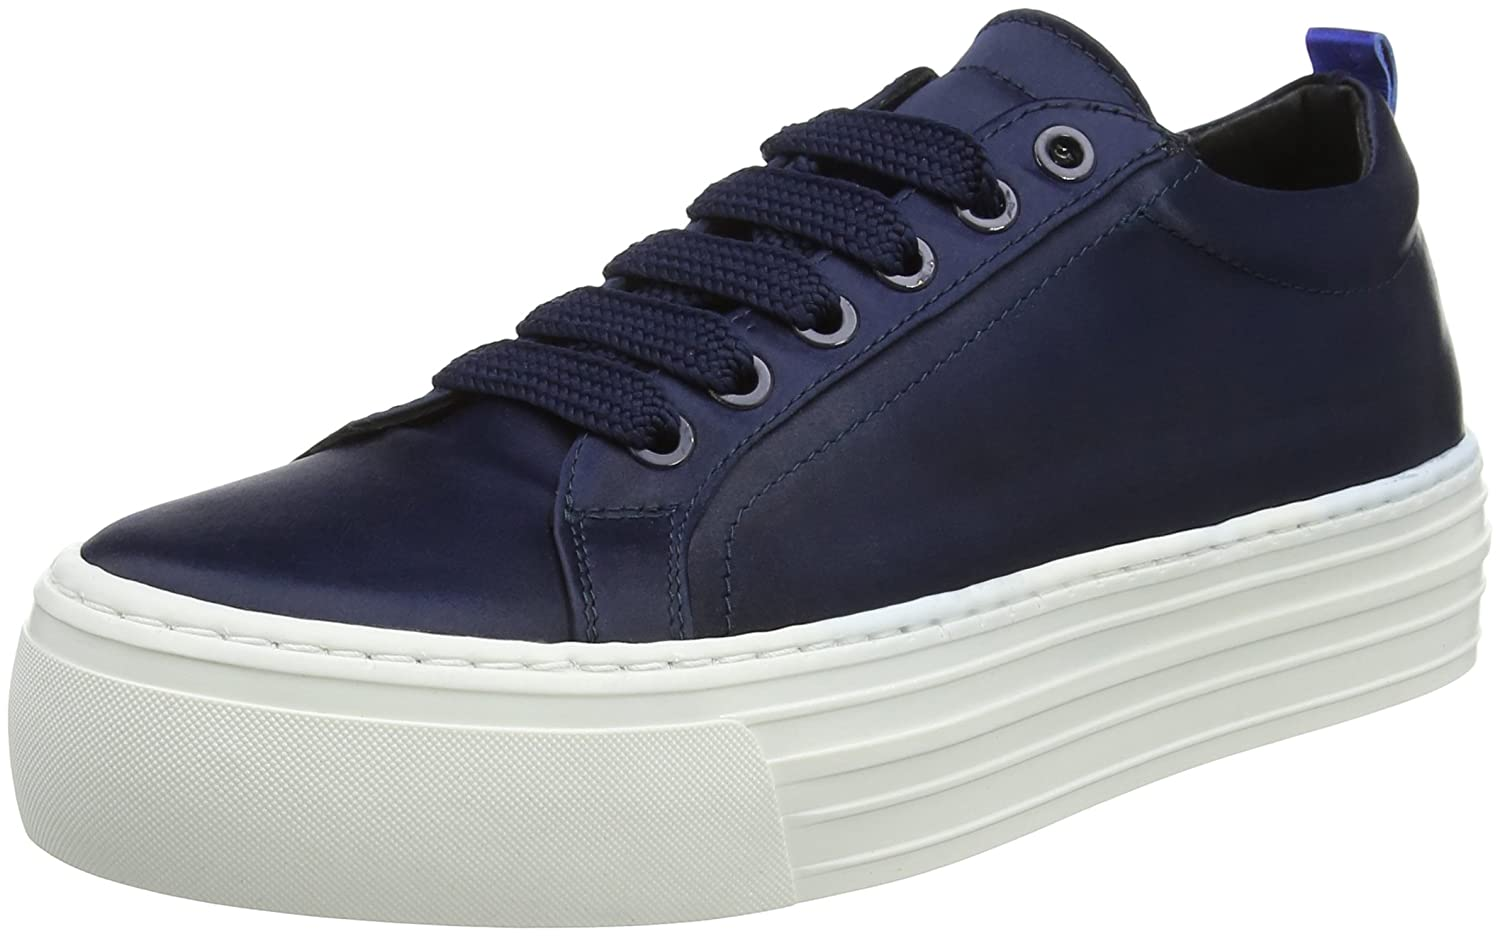 Bronx BX 425 Bfellowx, (Navy Baskets Femme, Rose 19967 Bonbon, Bfellowx, 38 EU Bleu (Navy 78) 1b970cc - deadsea.space